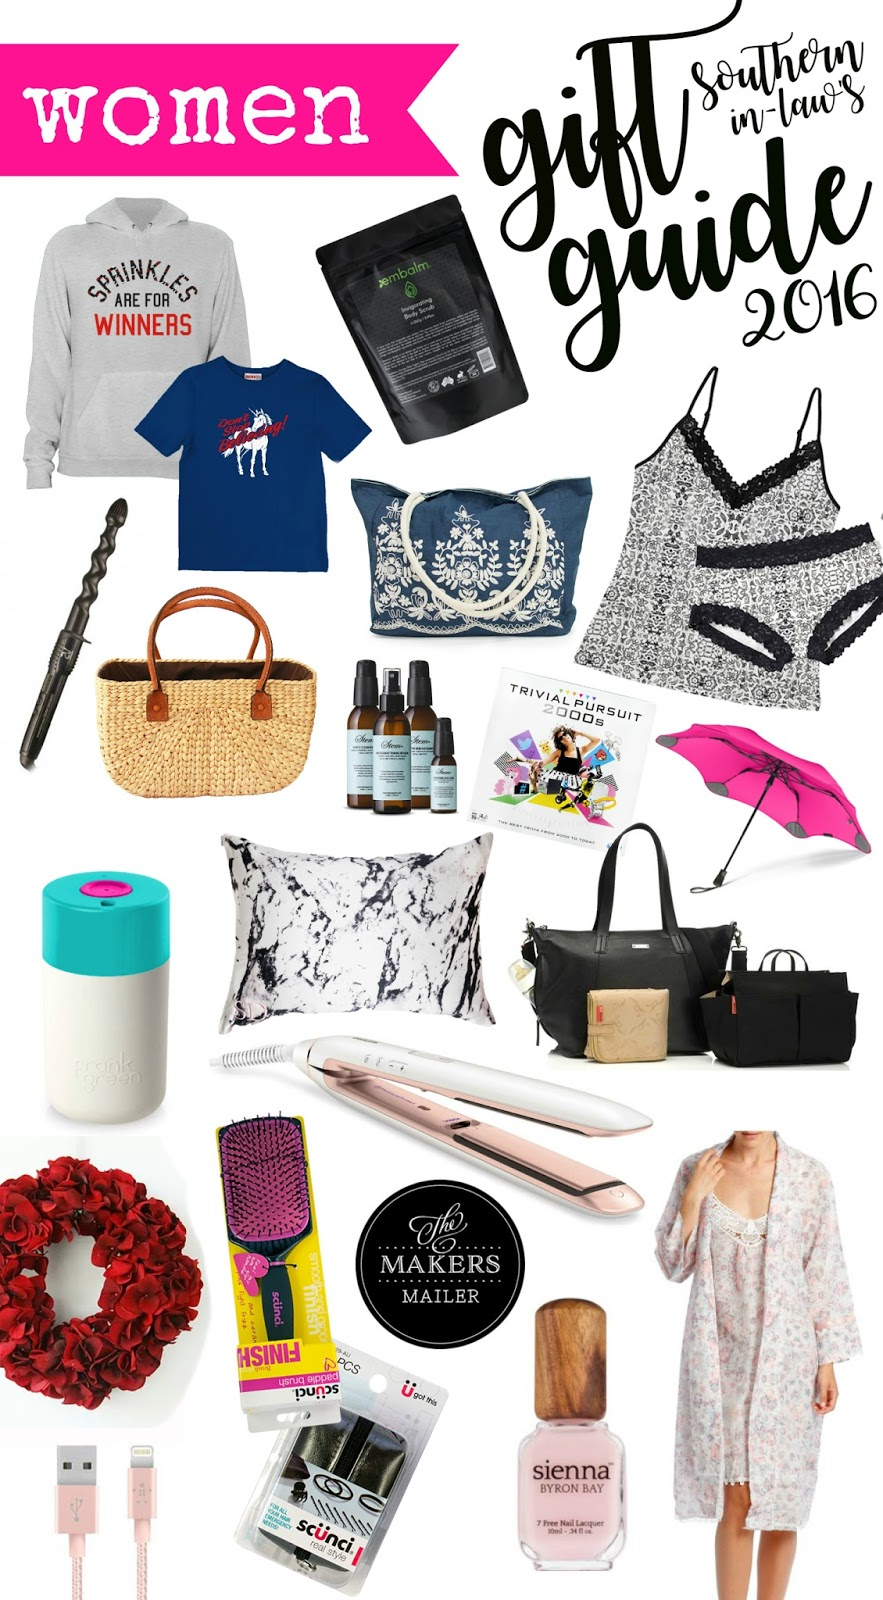 2016 Womens Christmas Gift Guide